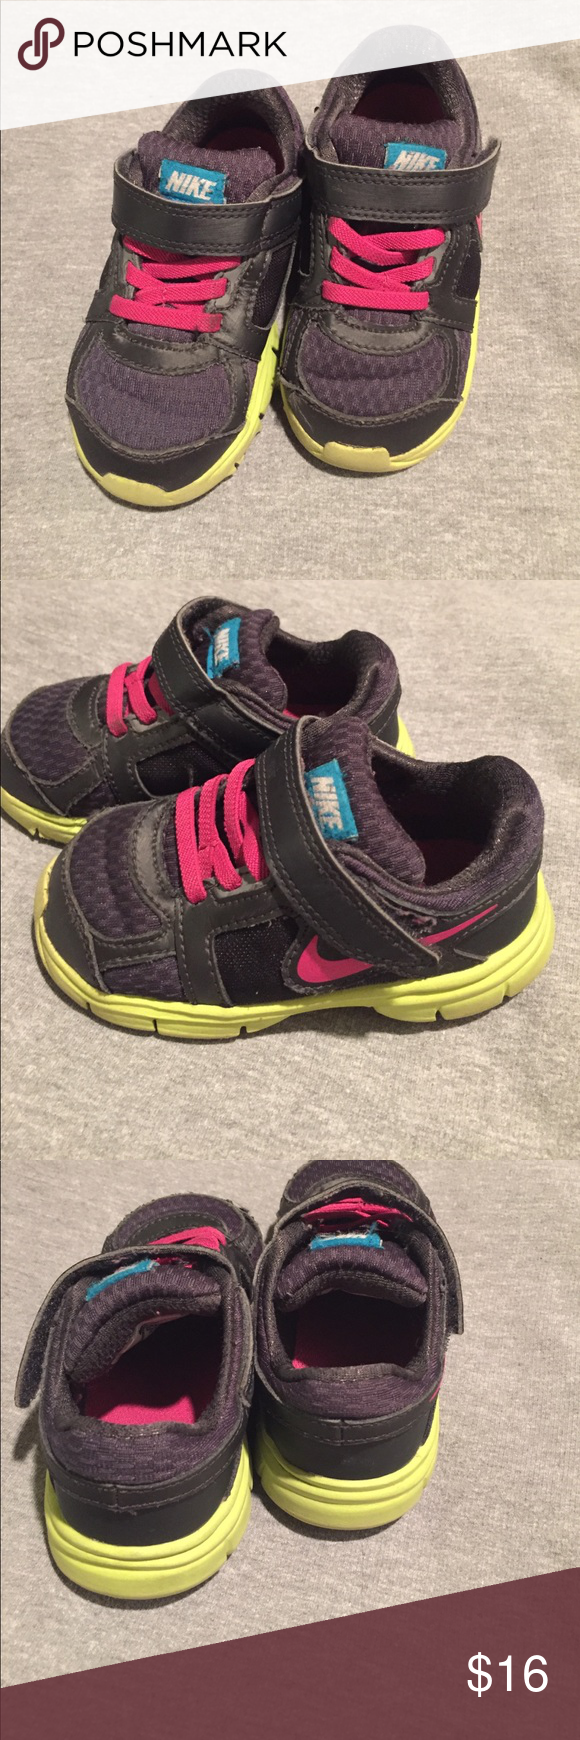 Nike youth shoes These shoes are in great, used condition. See photos for signs of wear. No structural flaws, only cosmetic wear. Nike Shoes Sneakers